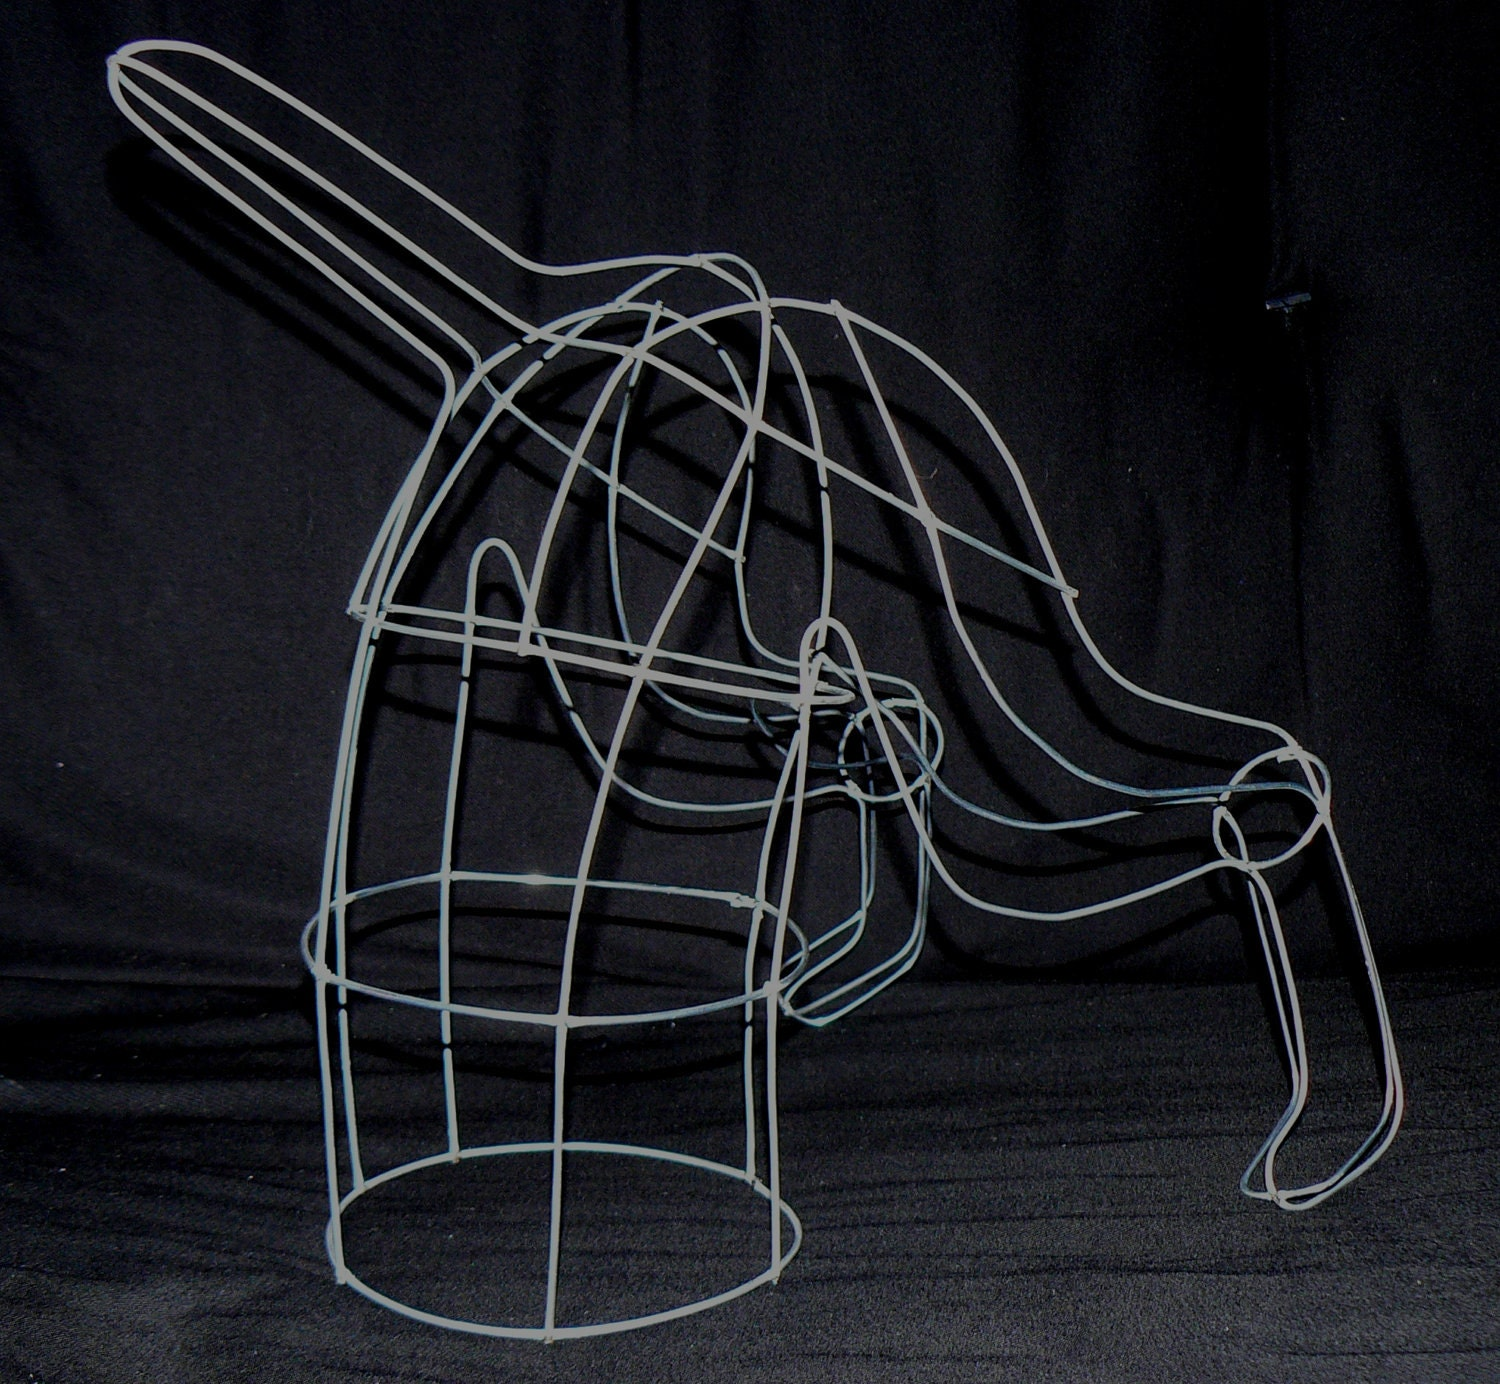 2 digging dog topiary wire art dog frame designs for Dog wire art